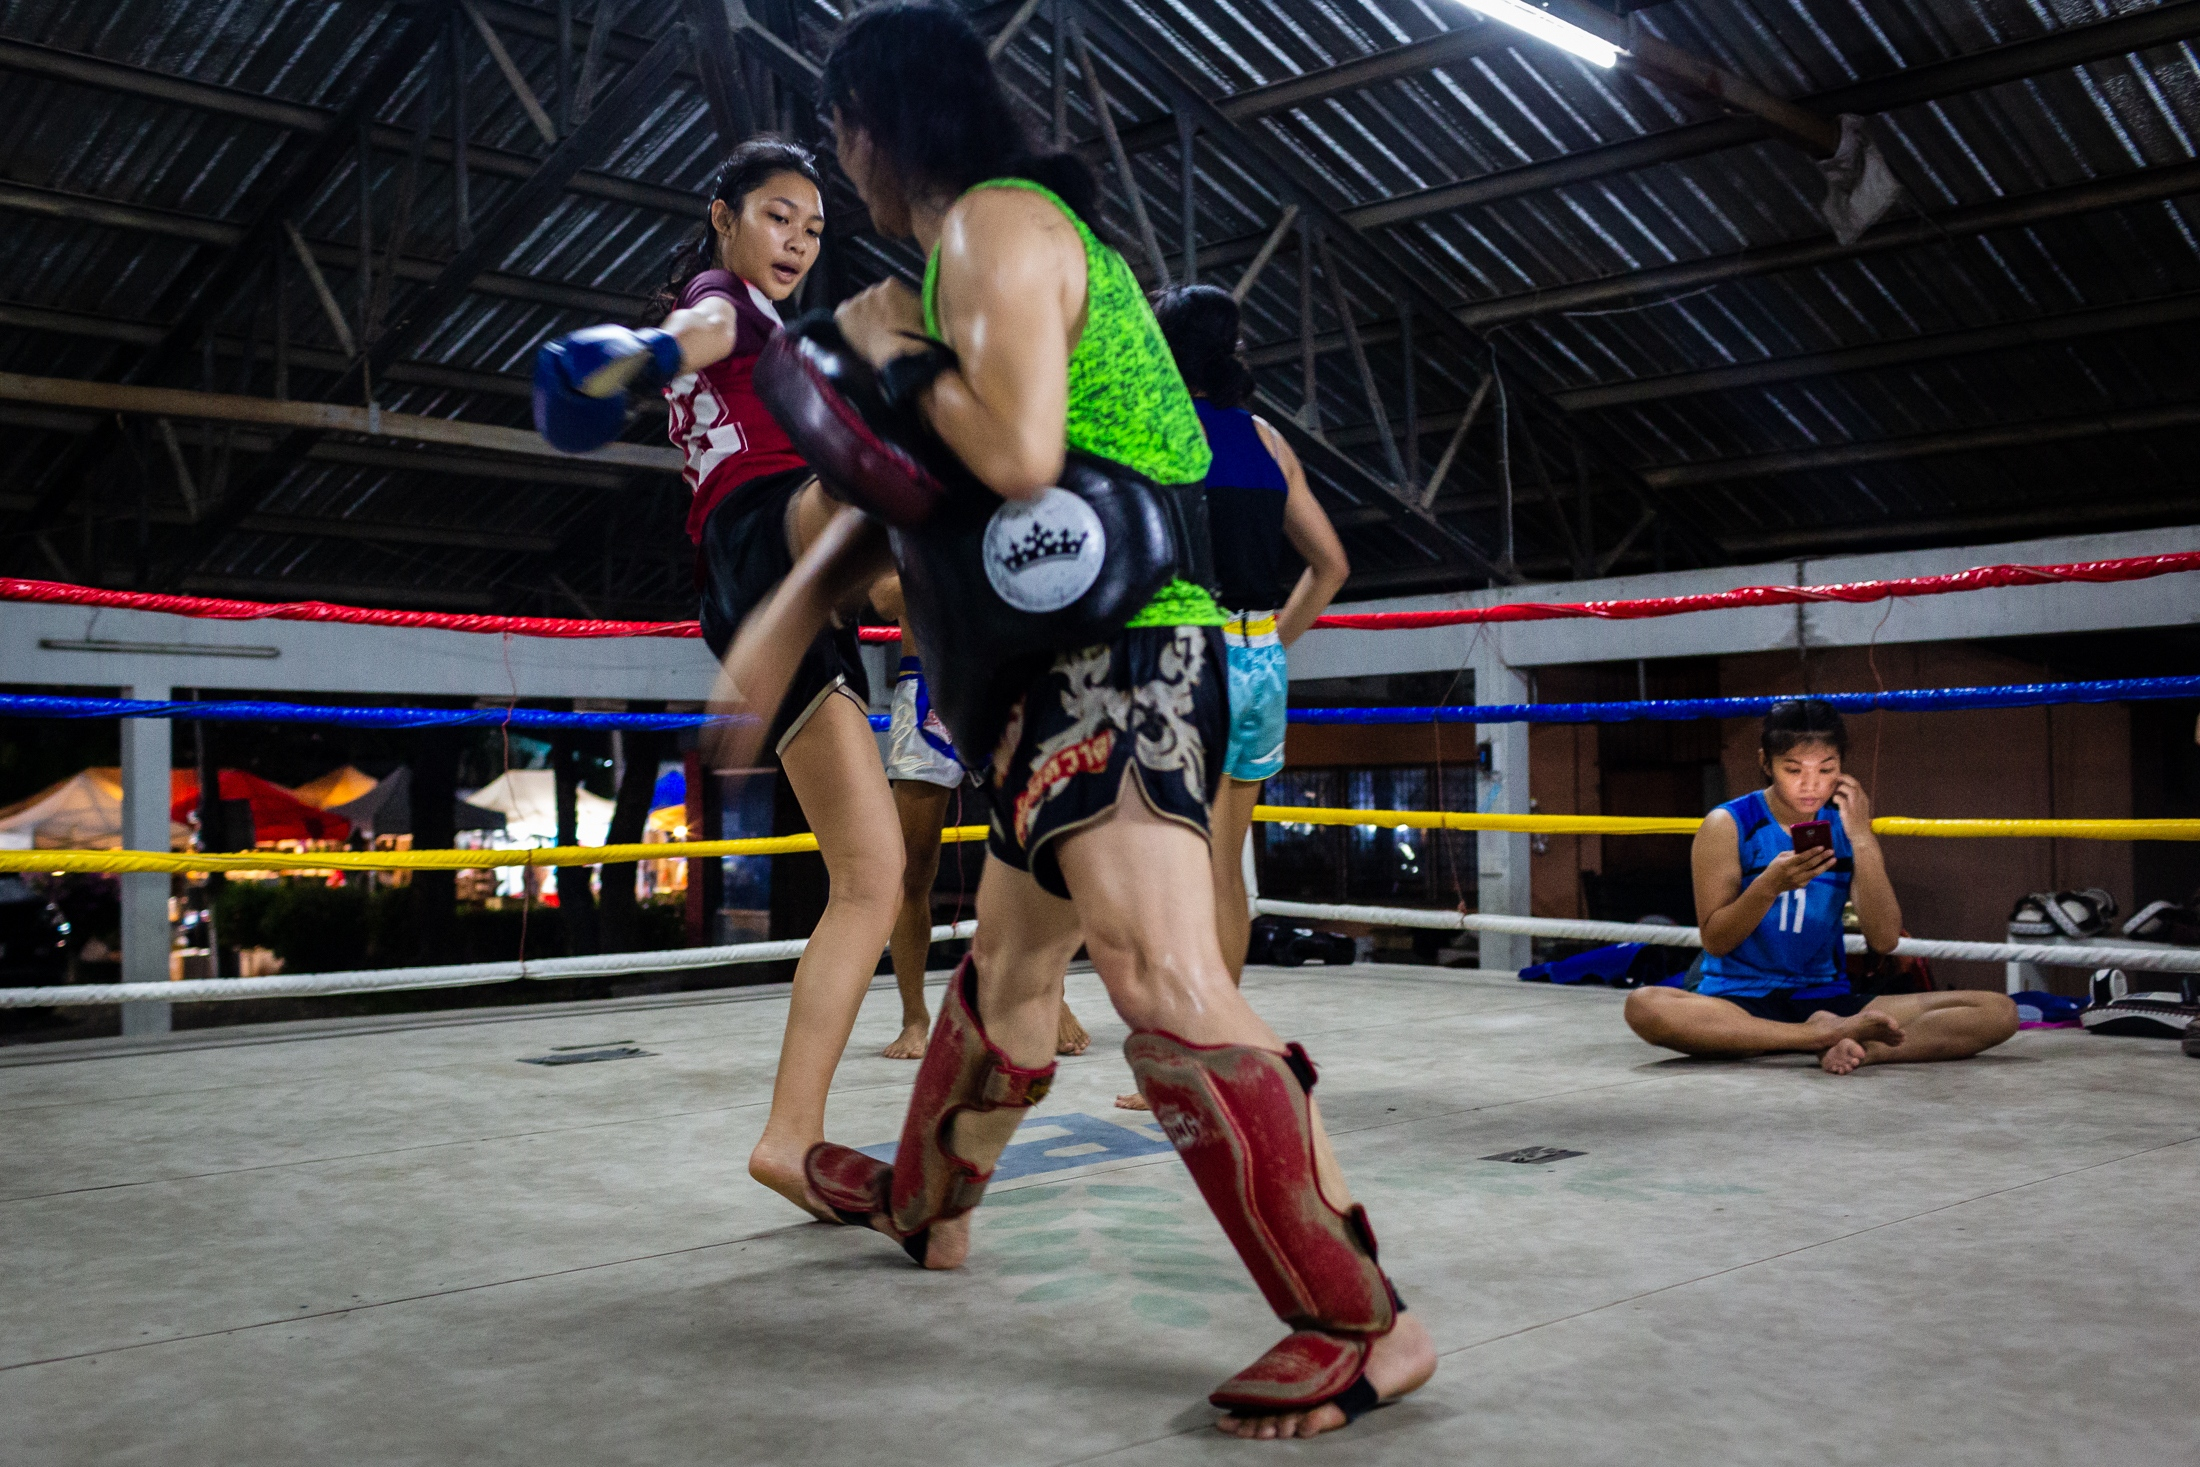 Peem practices her kicks, while a friend waits for her turn, during a training session at the Muay Thai Sakchatree gym in Chiang Mai, Thailand, 29th September 2018. In gyms like Sakchatree, women already overpass the number of men learning Muay Thai, especially in Chiang Mai, where a local promoter sees the sport as a way to promote equality. All girls are allowed to practise free of charge in Sakchatree gym.